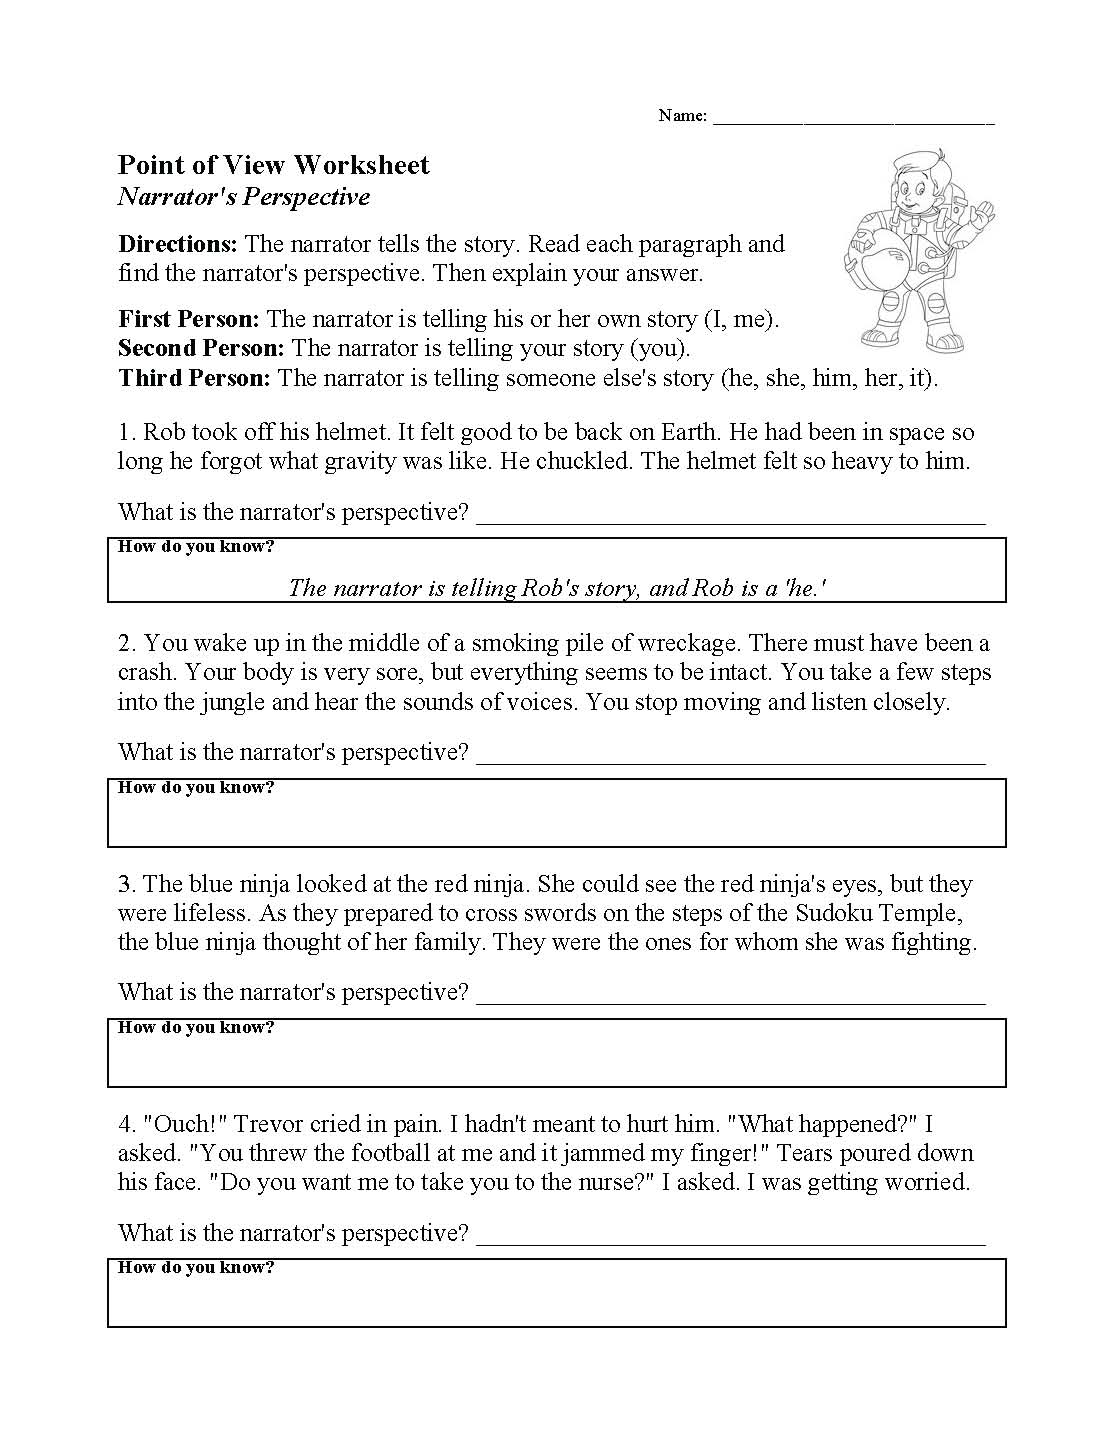 Elements Of Fiction Worksheets